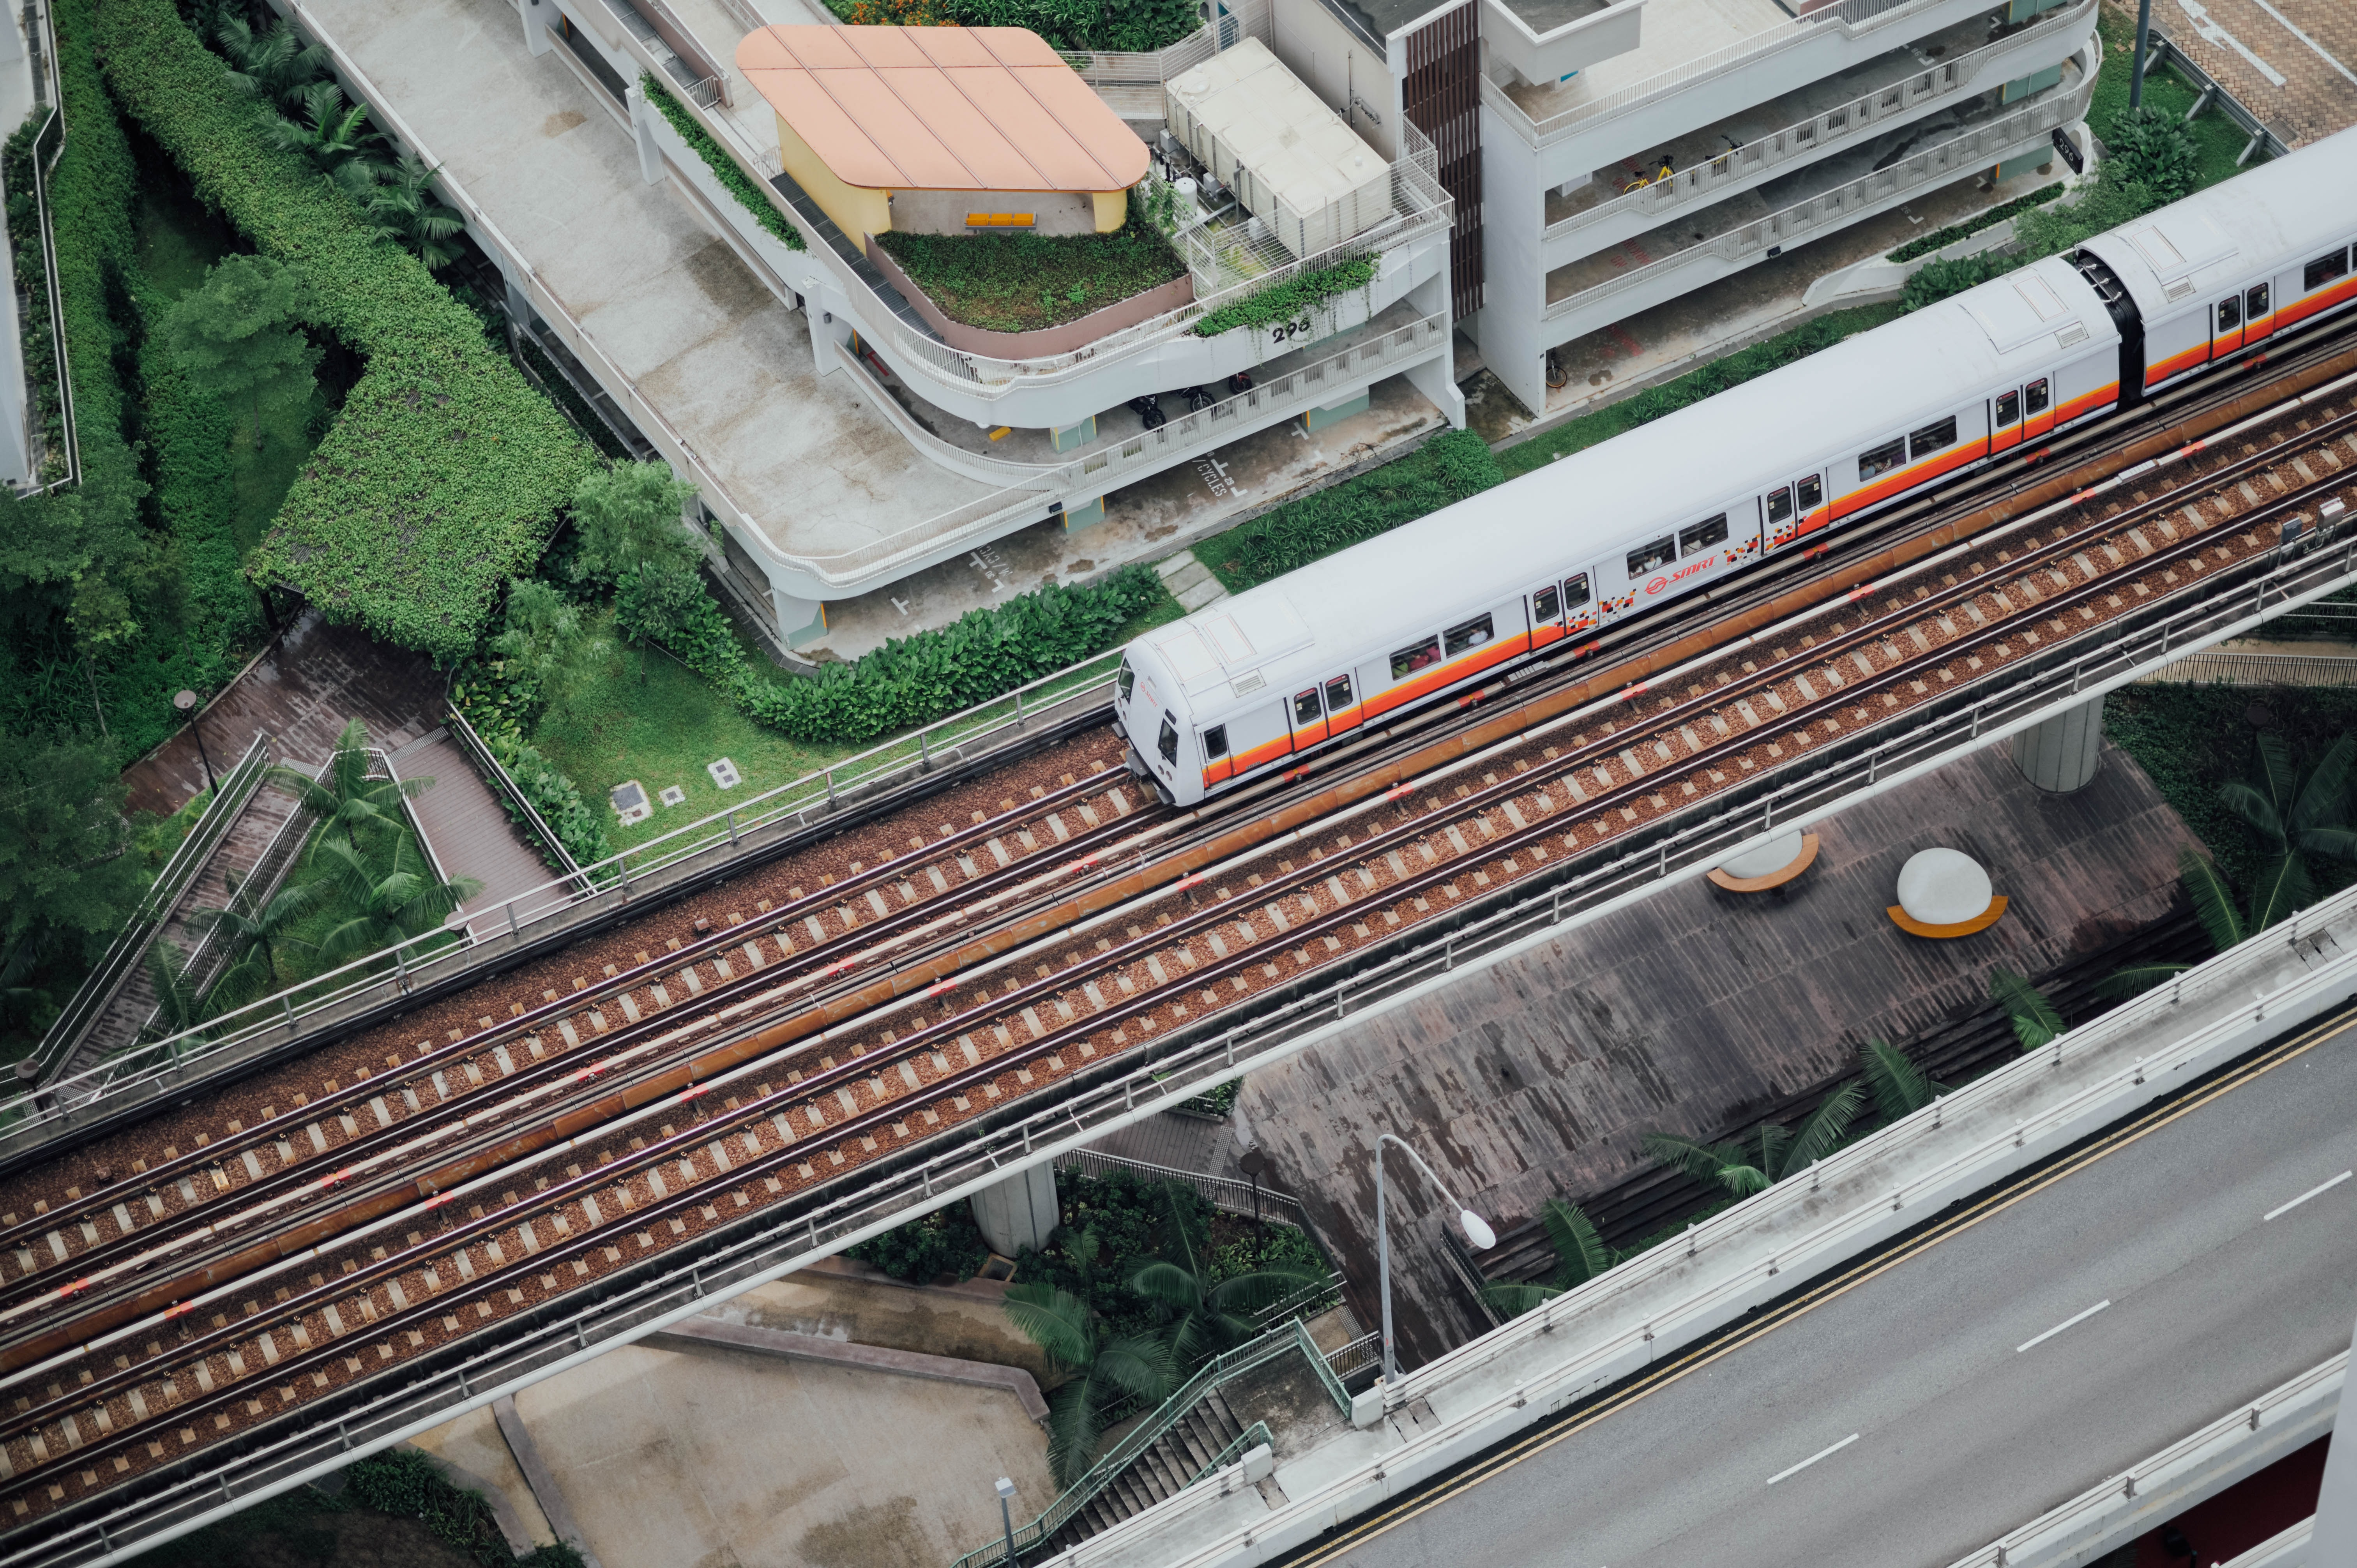 aerial photography of train on track during daytime